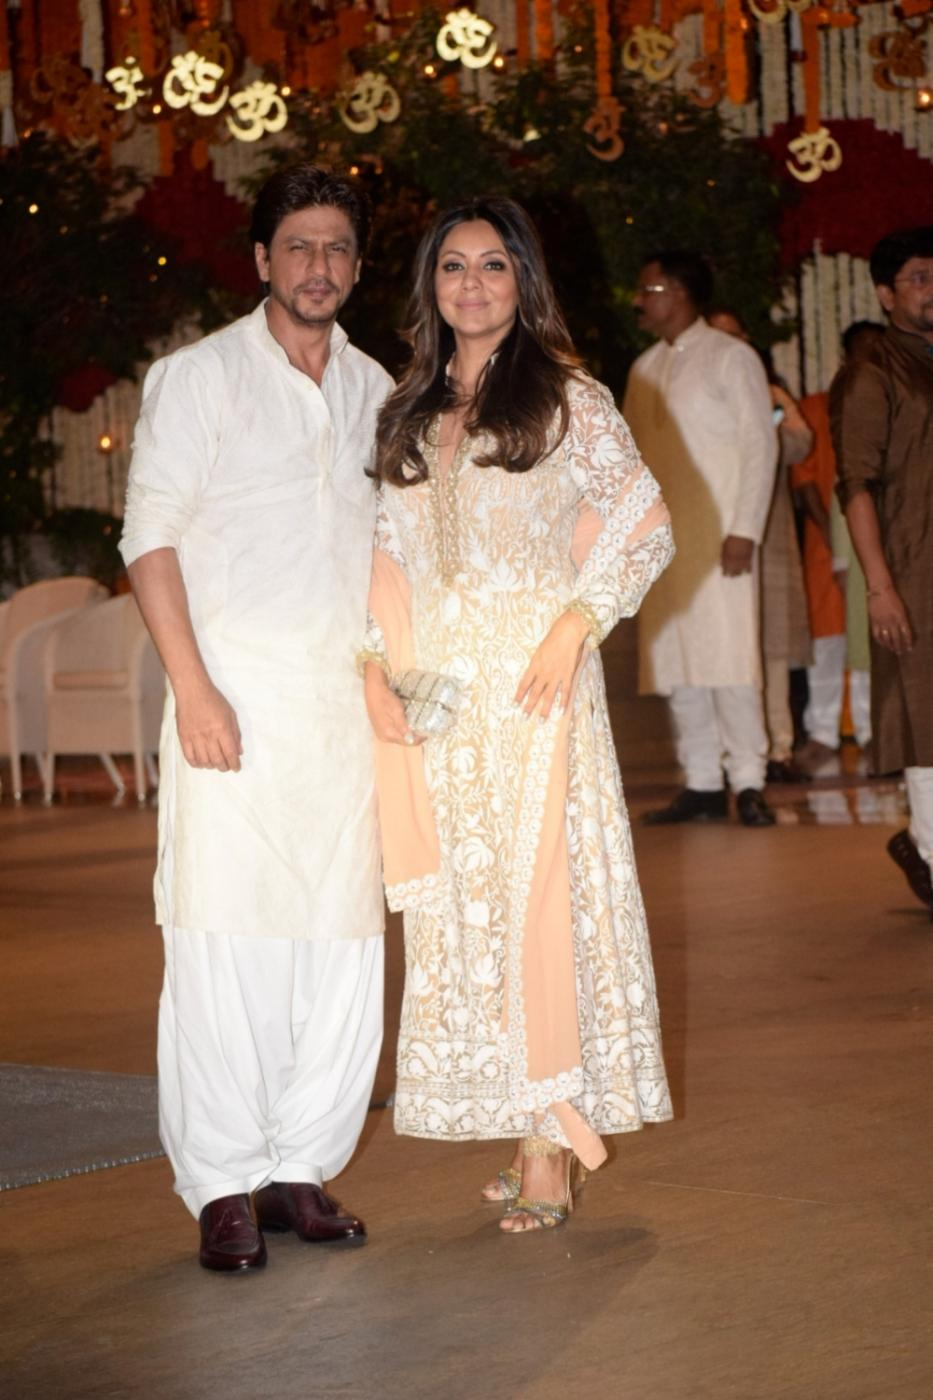 Mumbai: Actor Shah Rukh Khan with his wife Gauri Khan arrives at Reliance Industries Chairman and MD Mukesh Ambani's residence to celebrate Ganesh Chaturthi in Mumbai on Sept 13, 2018. (Photo: IANS) by .